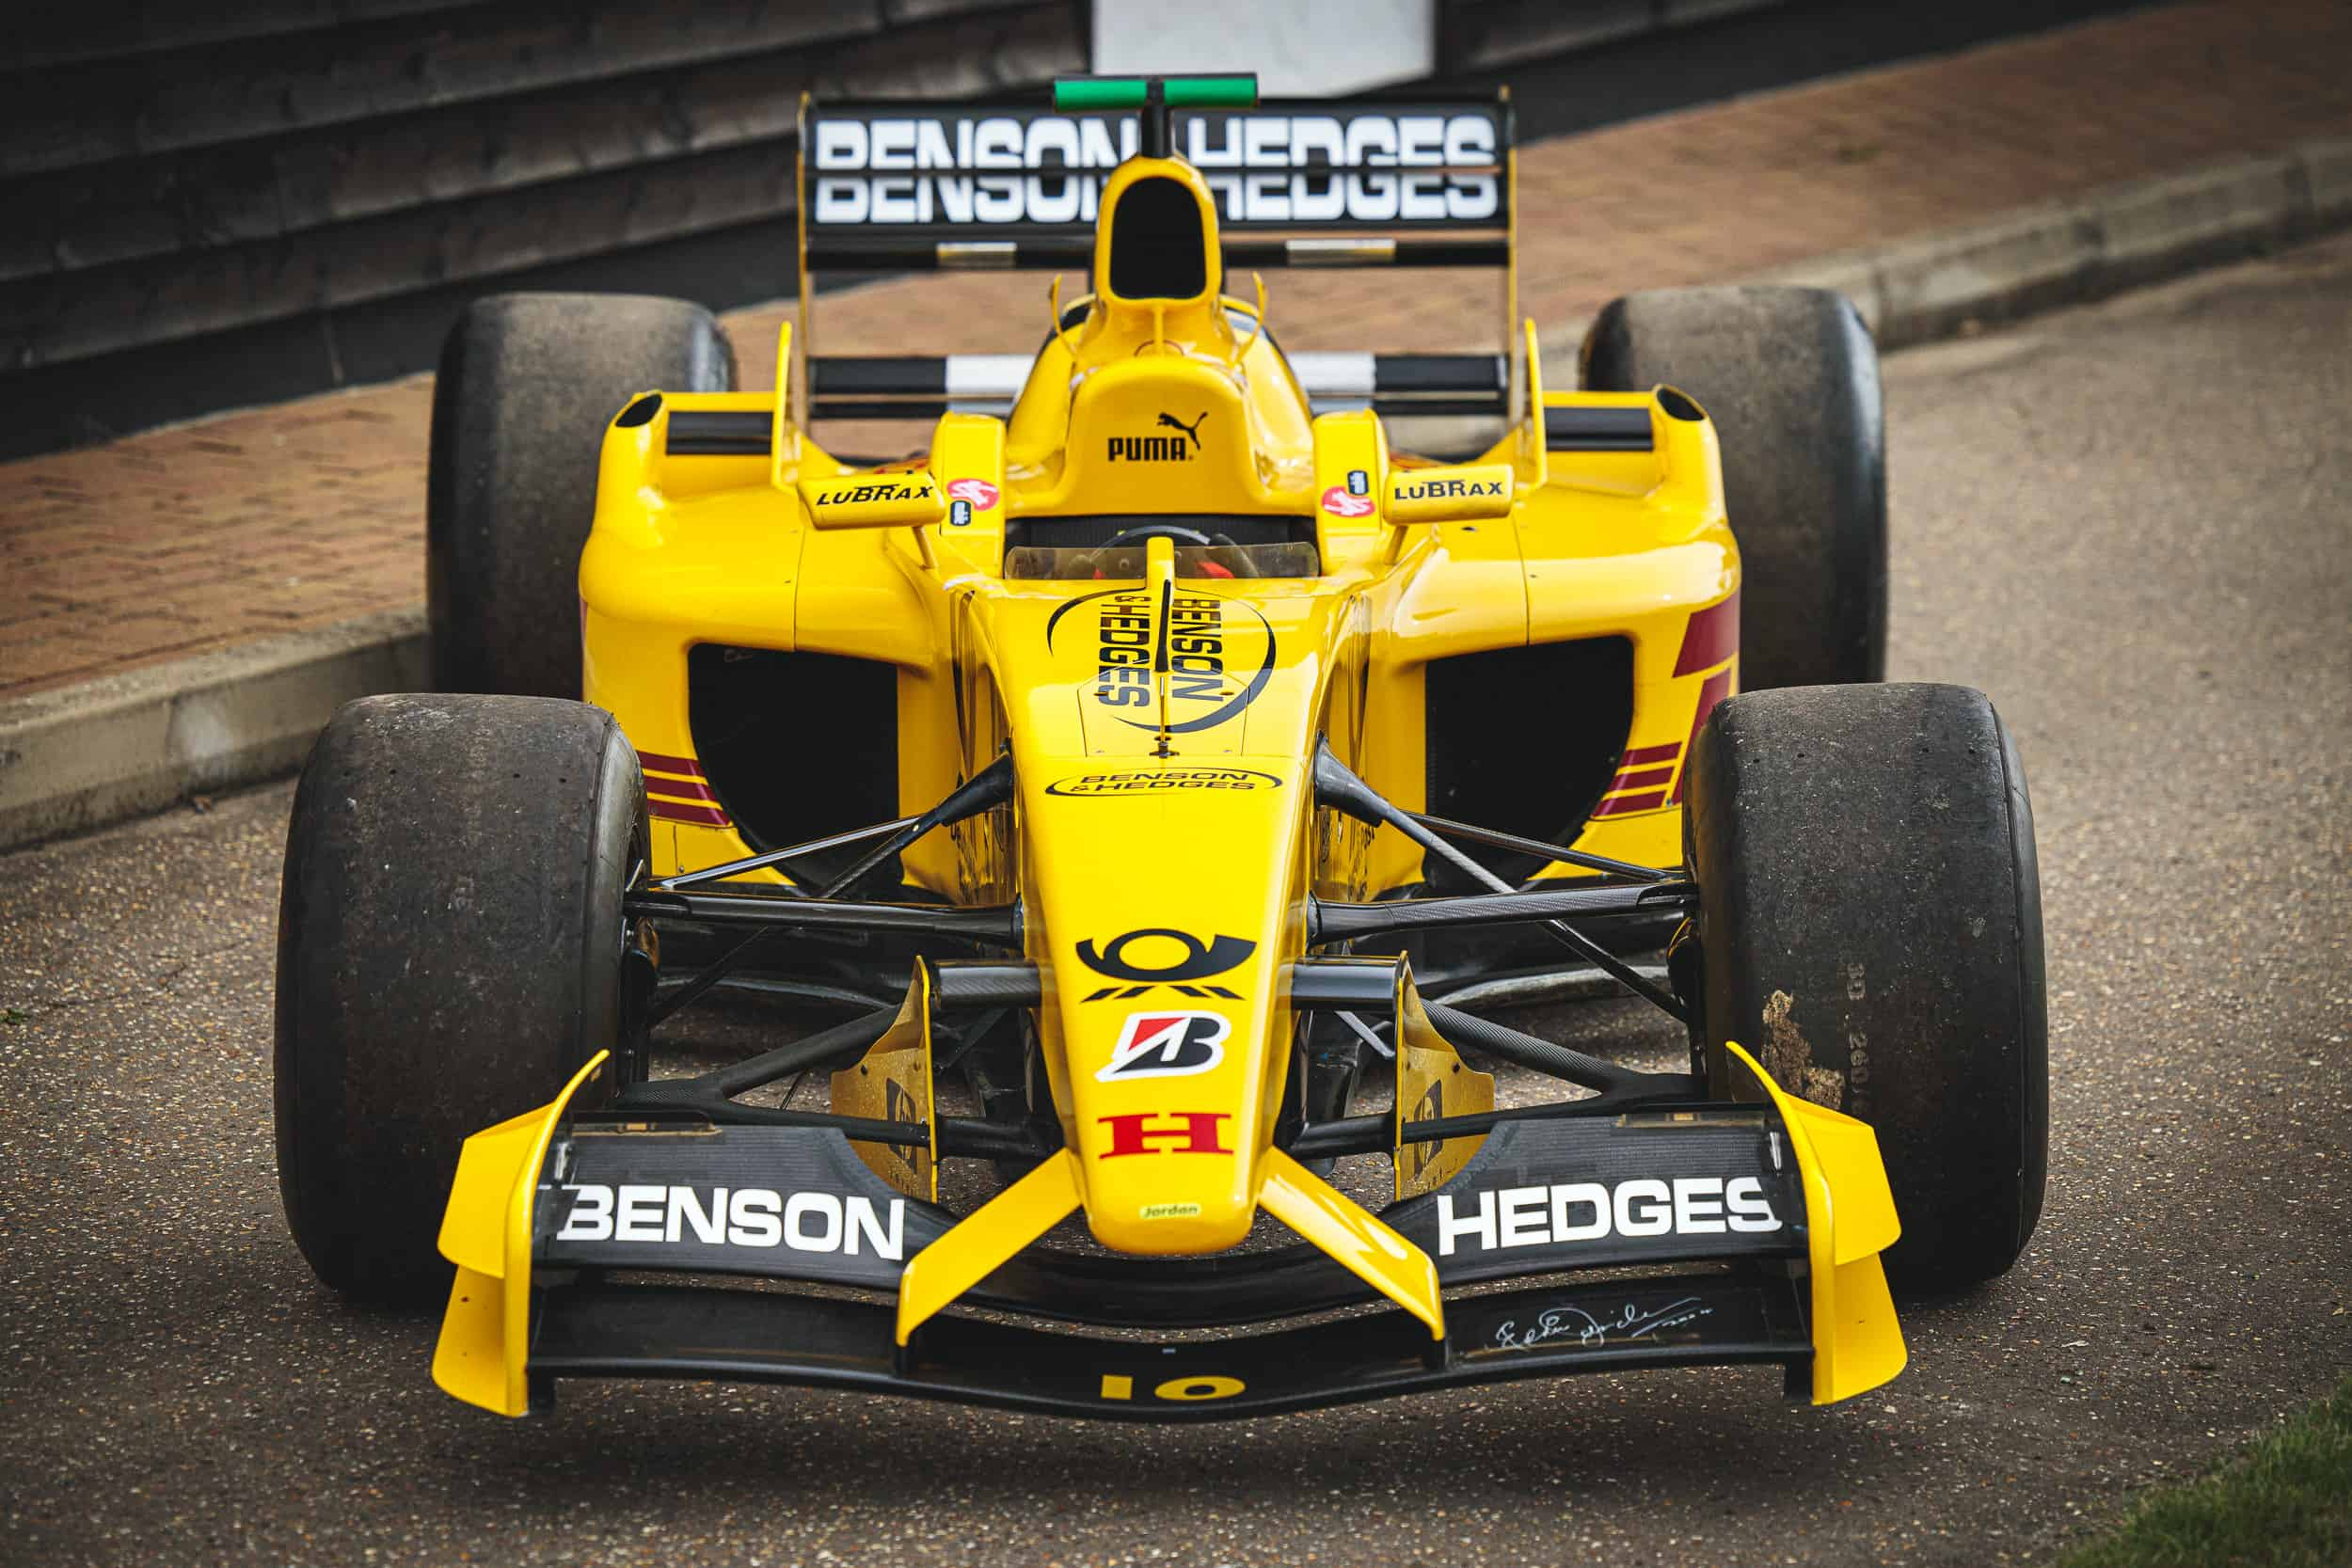 One Of Two Surviving Jordan Ej12 F1 Cars Going To Auction